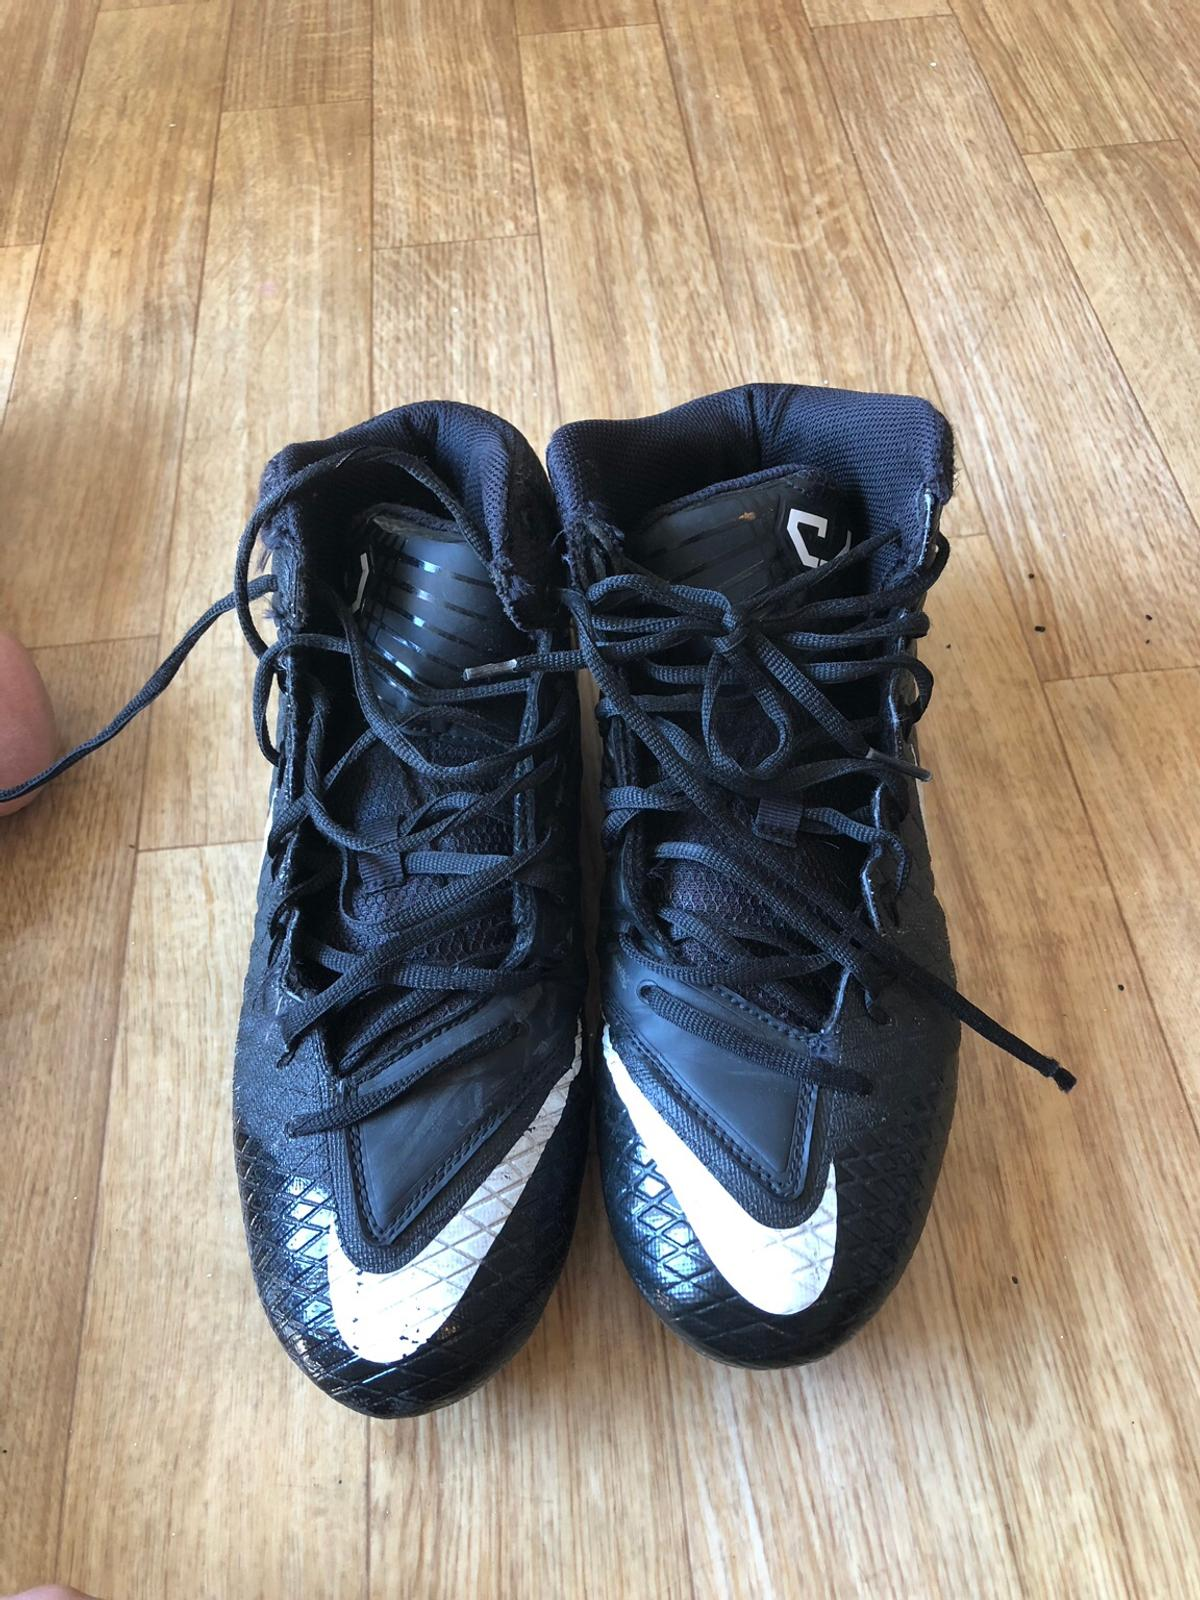 American Football Schuhe Nike CJ gr. 44